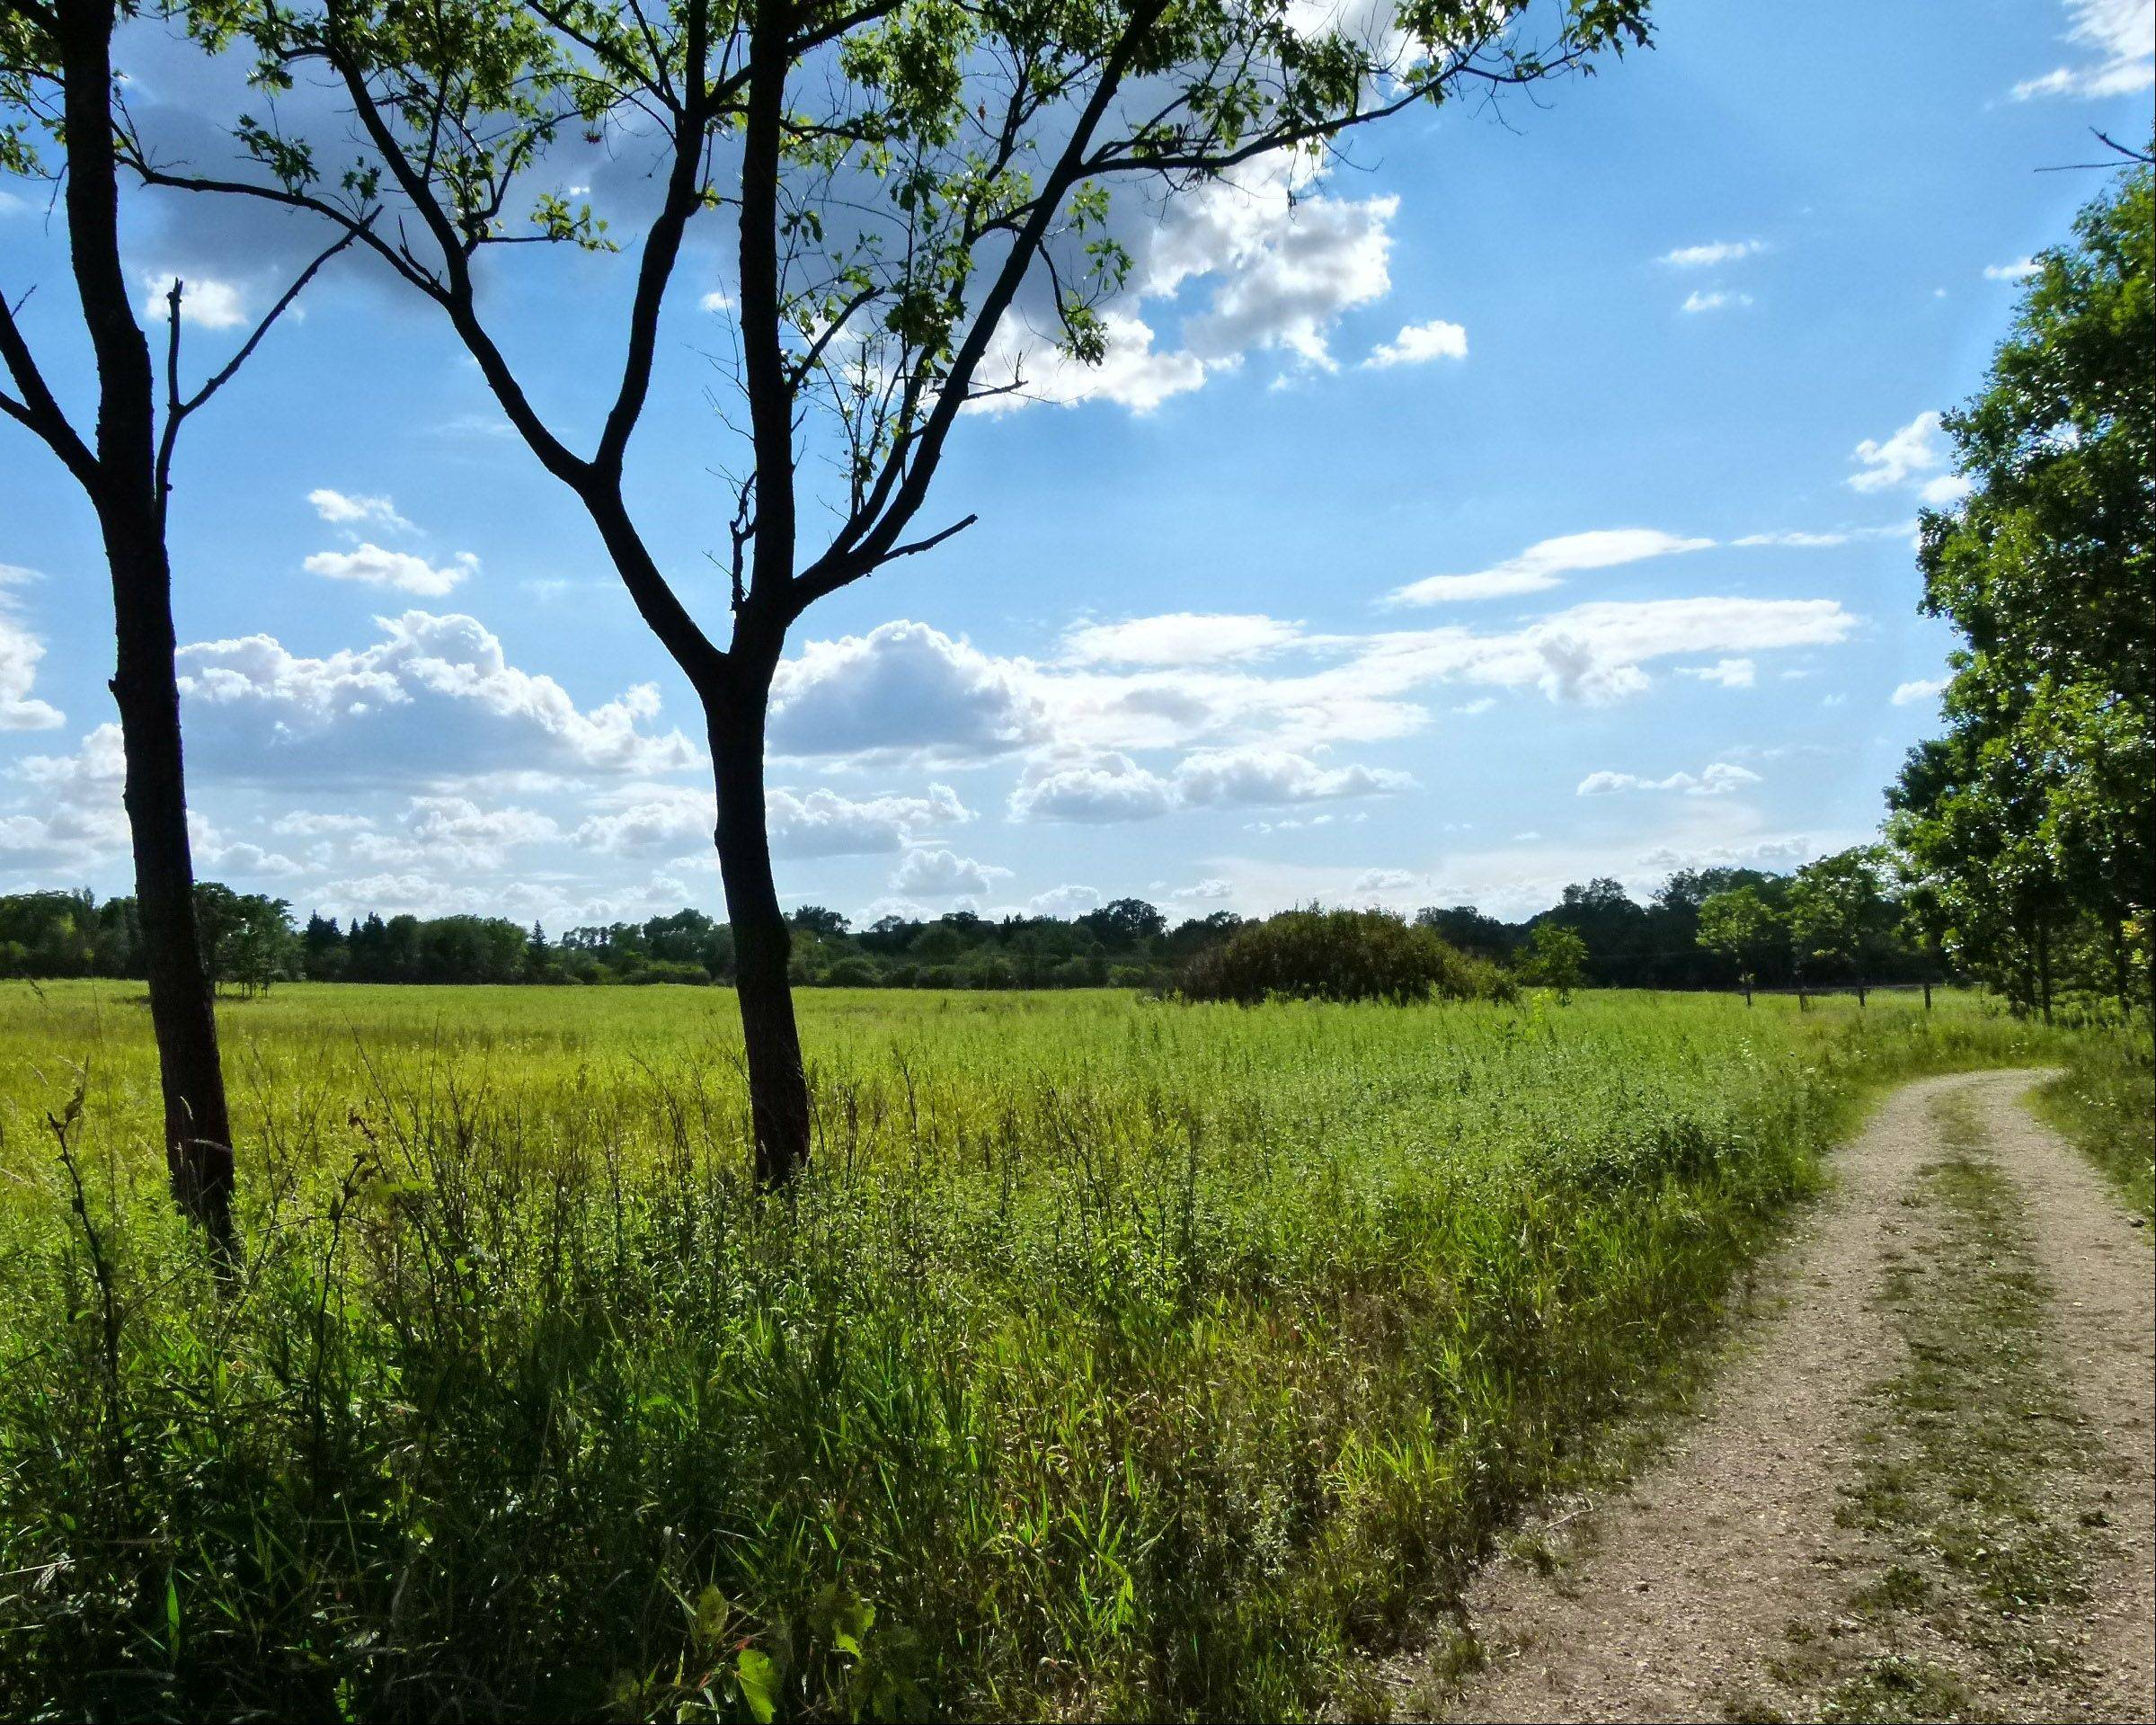 "Lena Conway of Naperville visited the Morton Arboretum's prairie for the first time and was stunned by the variety of plants and insects. ""It gave me so much peace and joy to stroll its paths,"" she says."